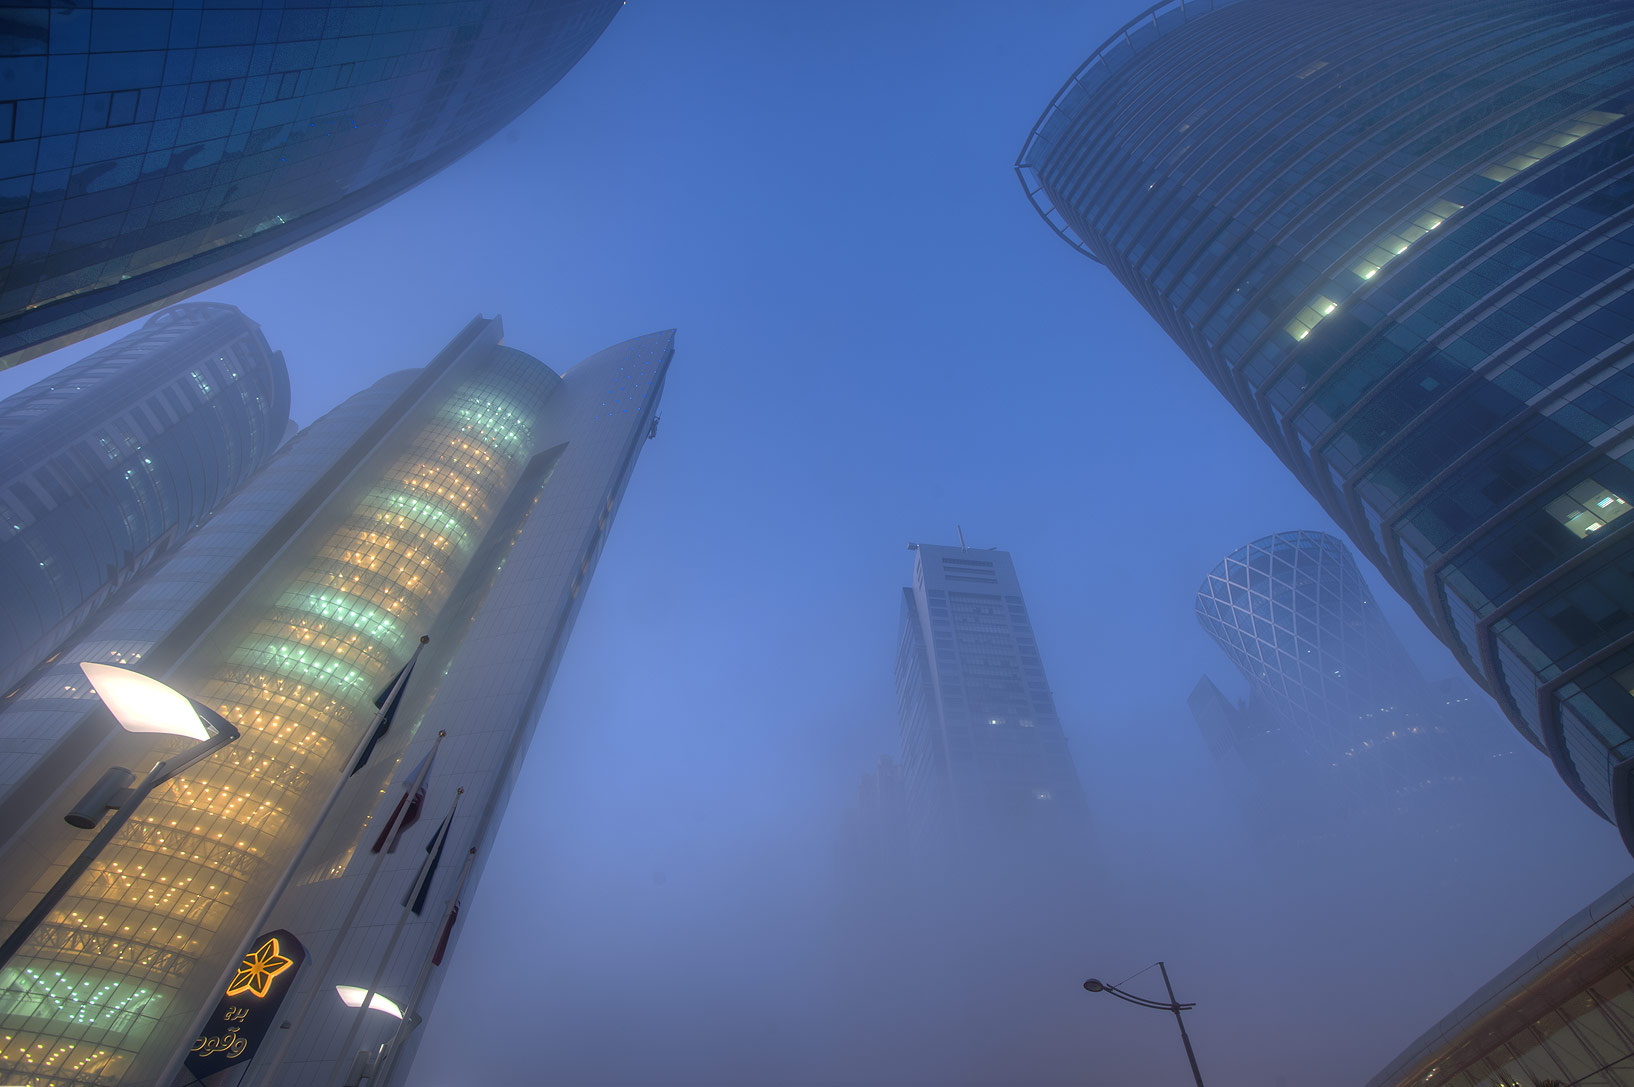 Nakheel and Al Fardan towers in West Bay in fog. Doha, Qatar